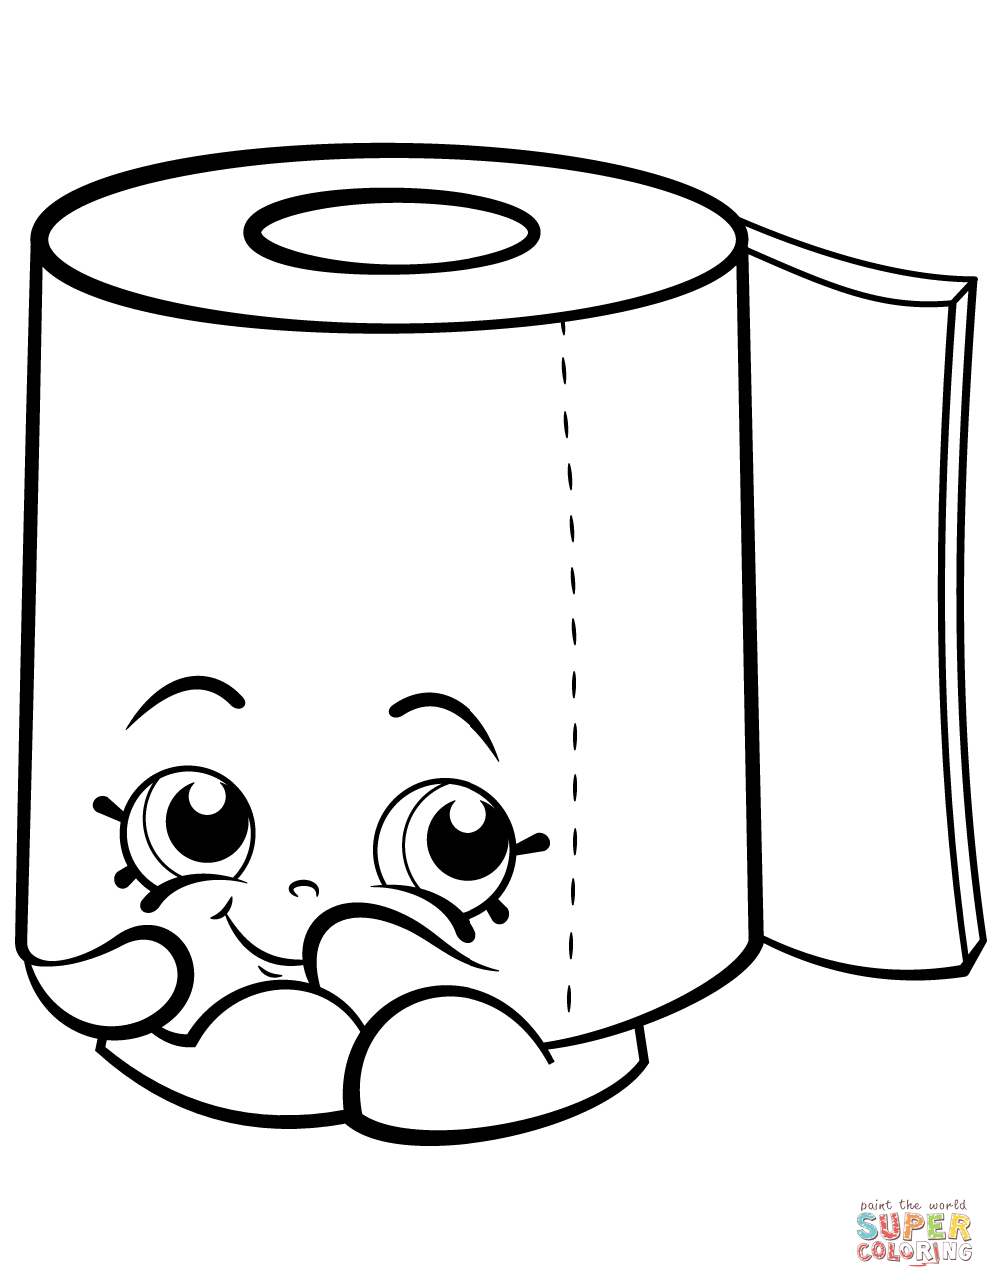 Toilet clipart coloring #1